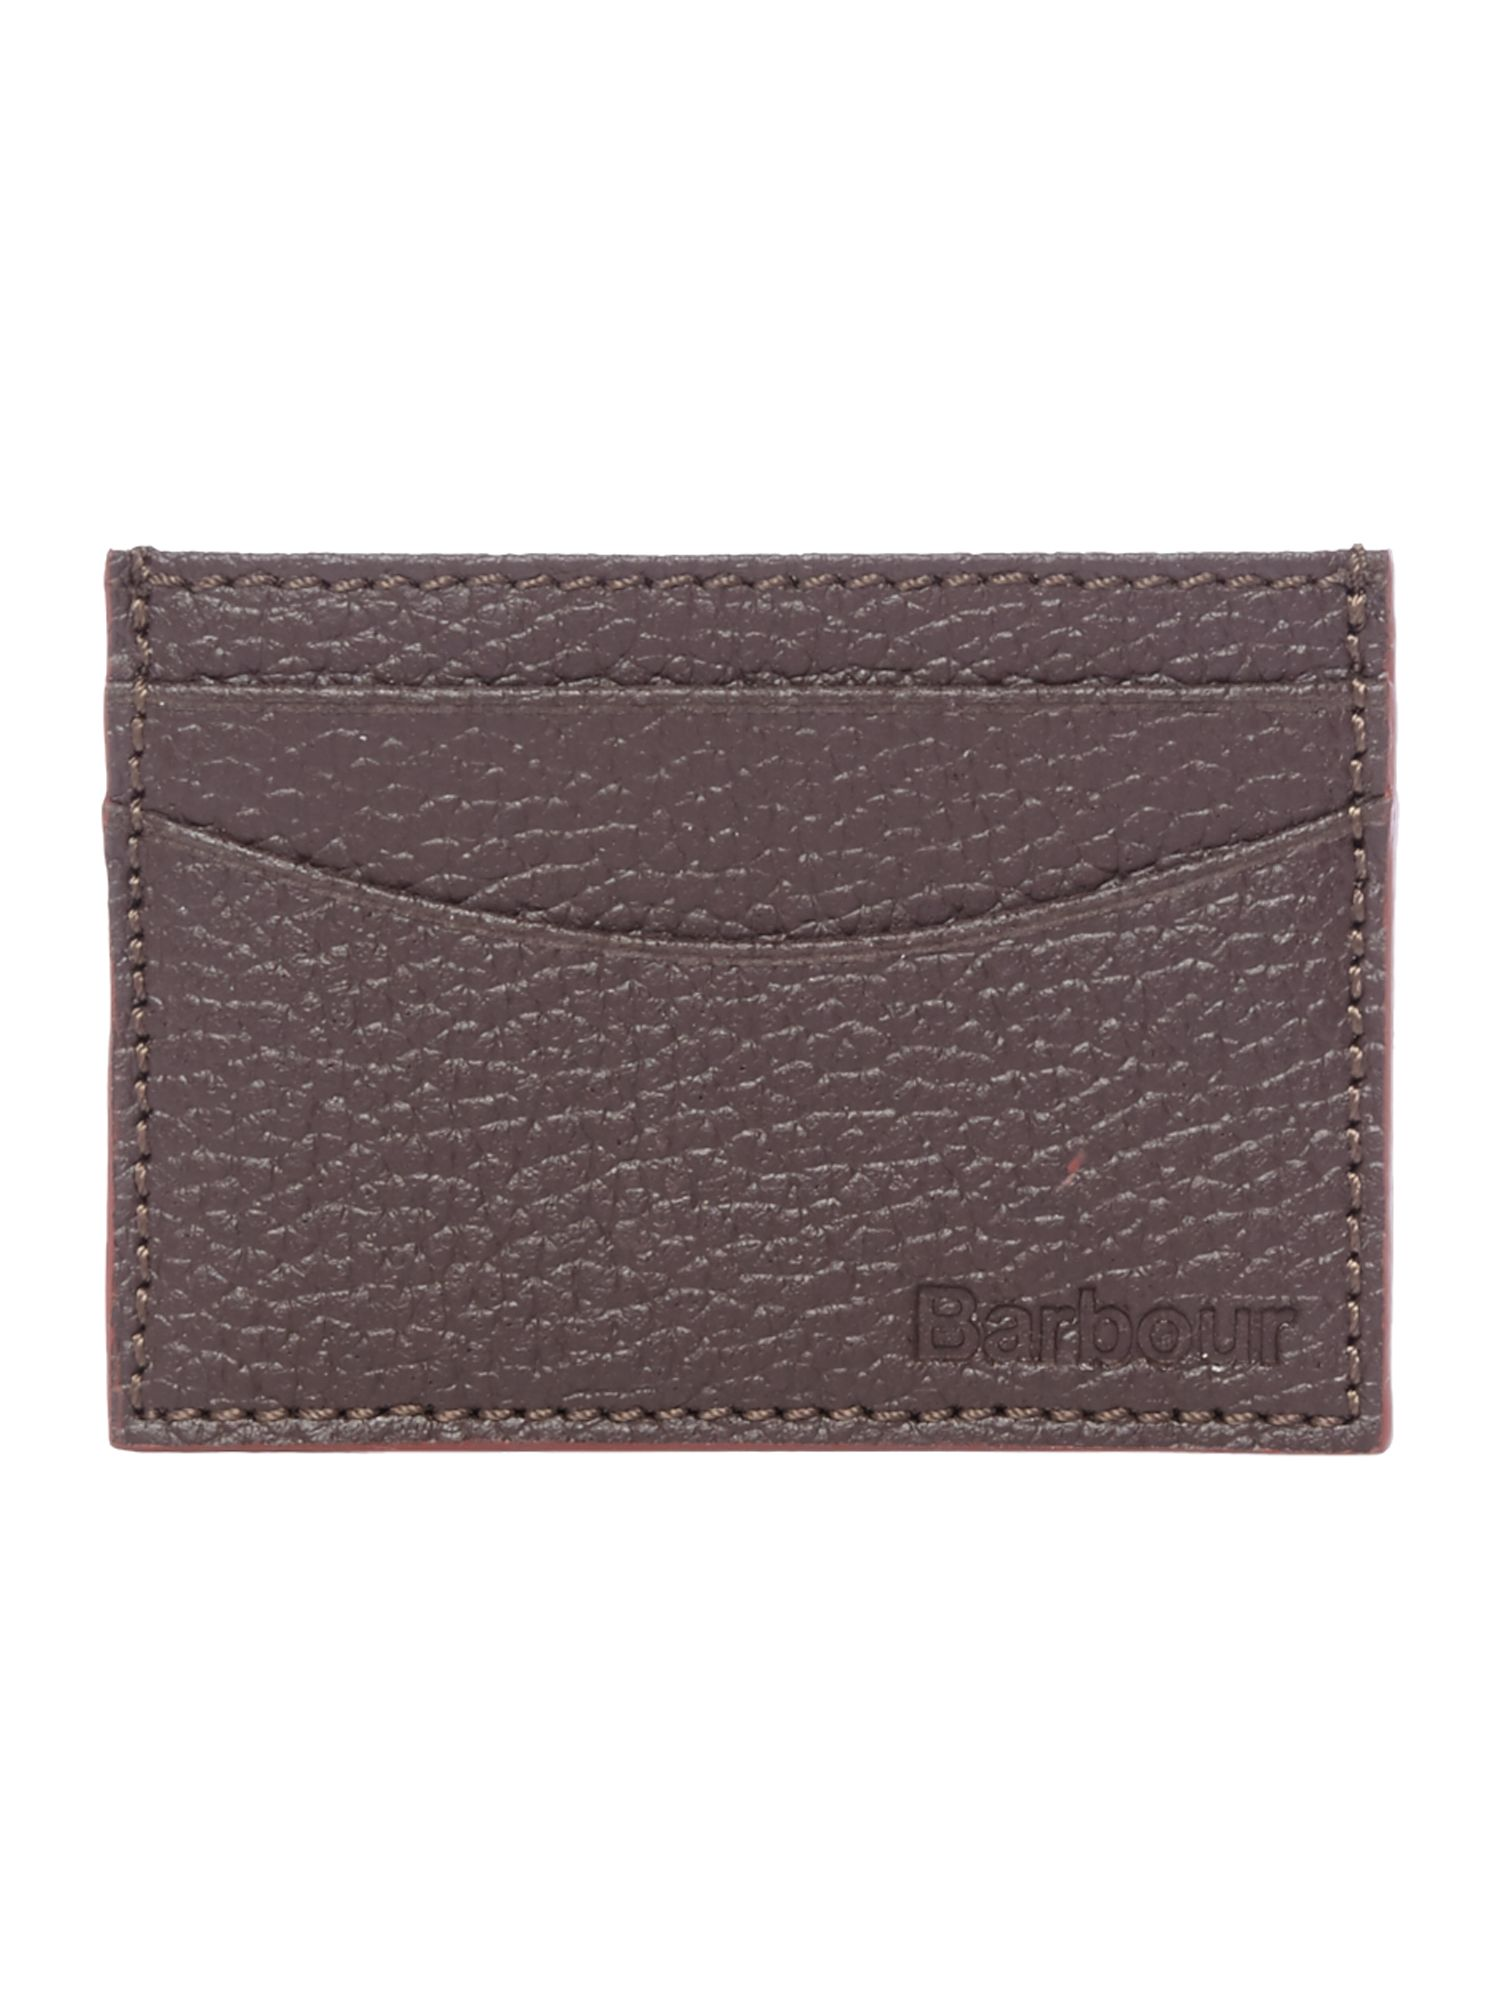 Barbour Barbour Grain Leather Card Holder, Dark Brown